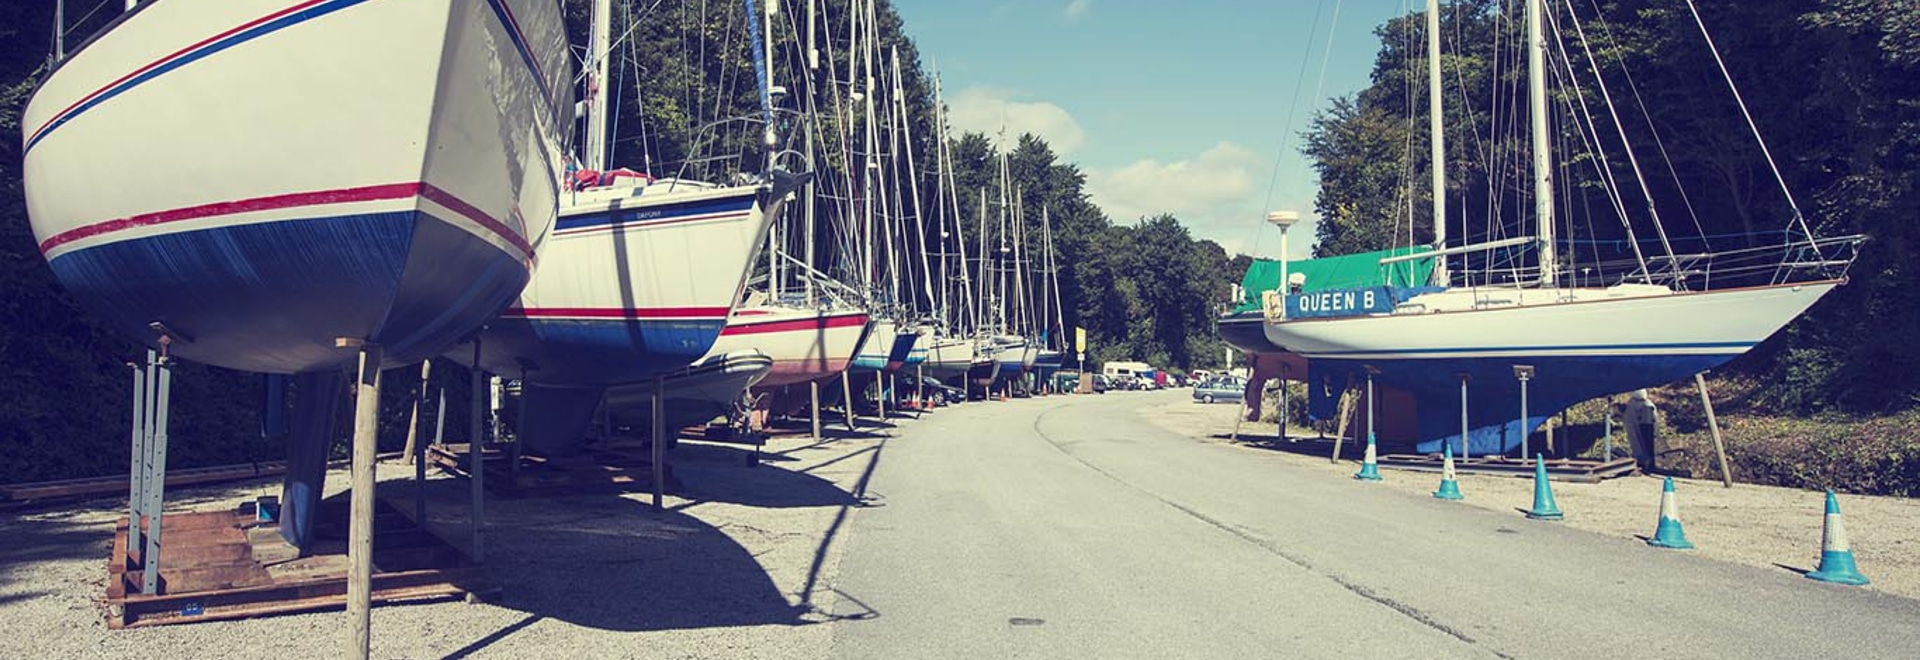 Storing boats ashore over winter helps to protect them